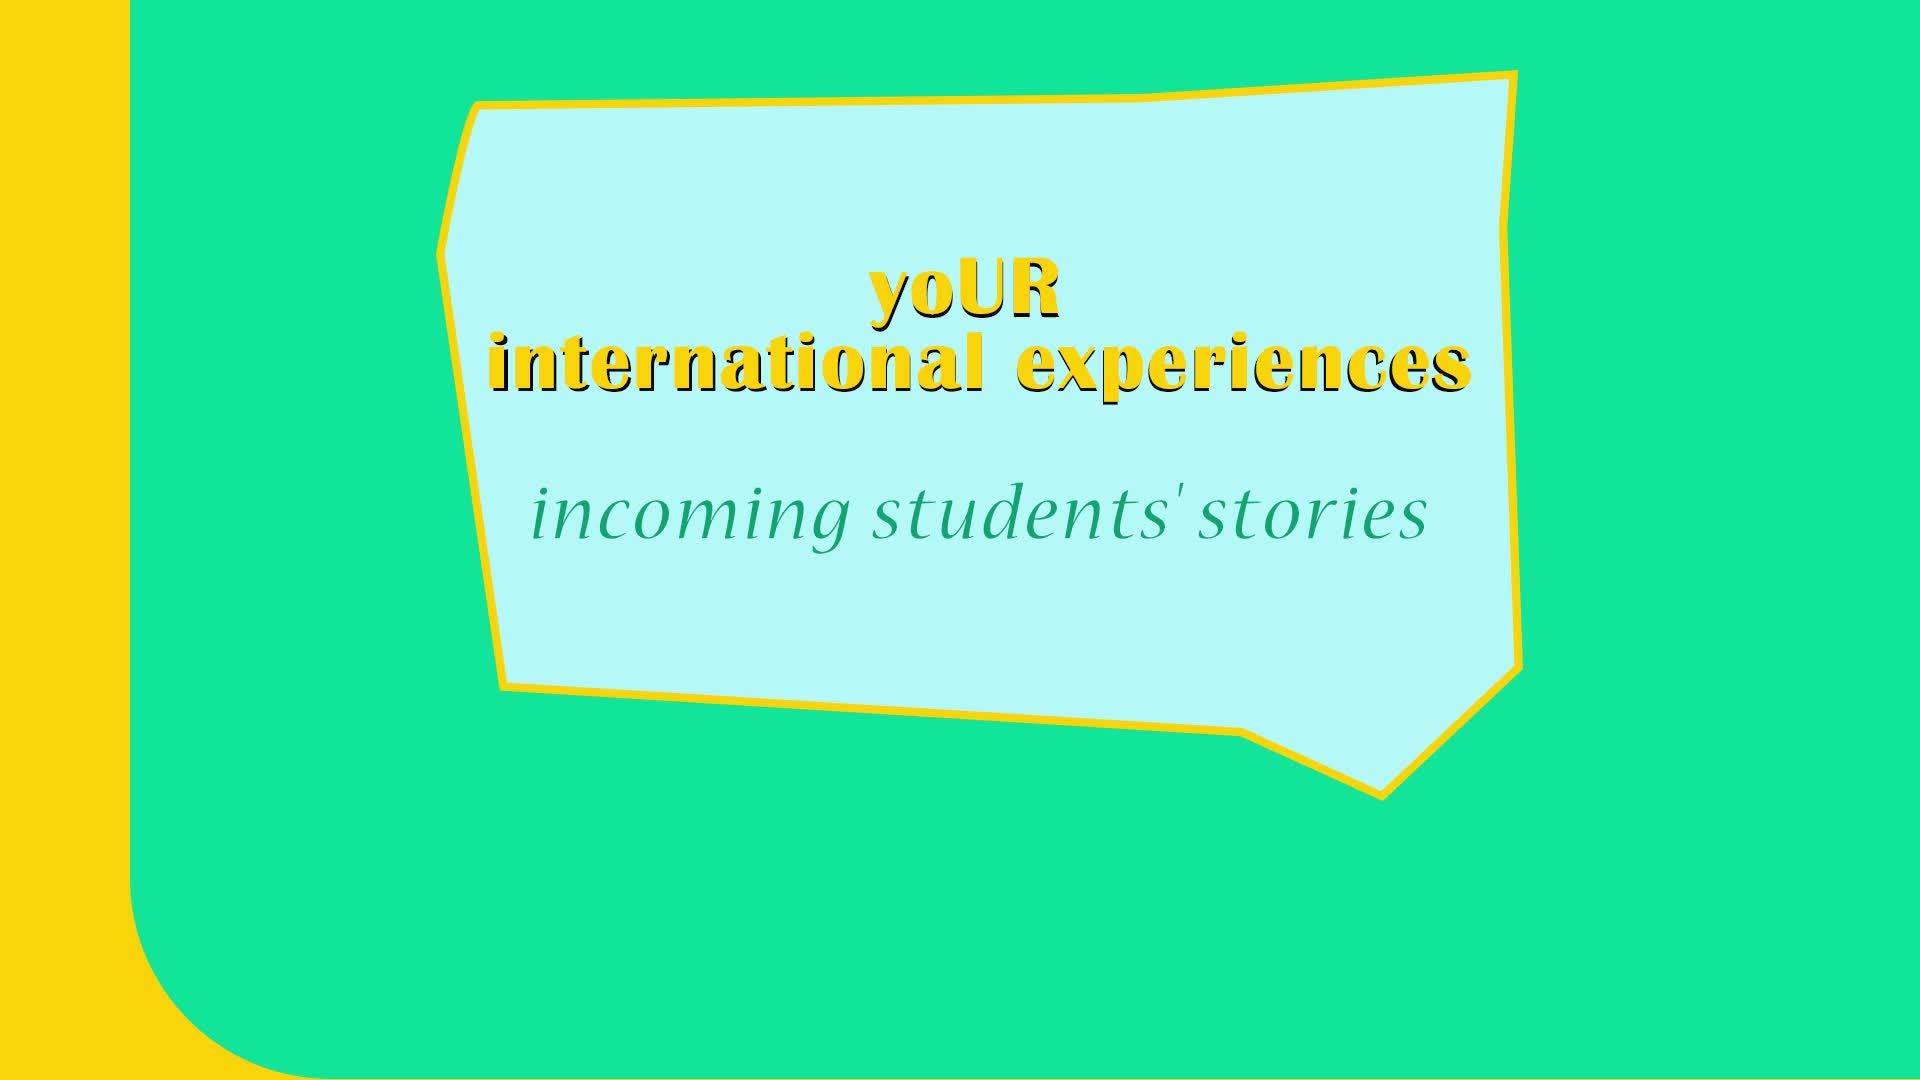 Interview with incoming students - Susy from Taiwan